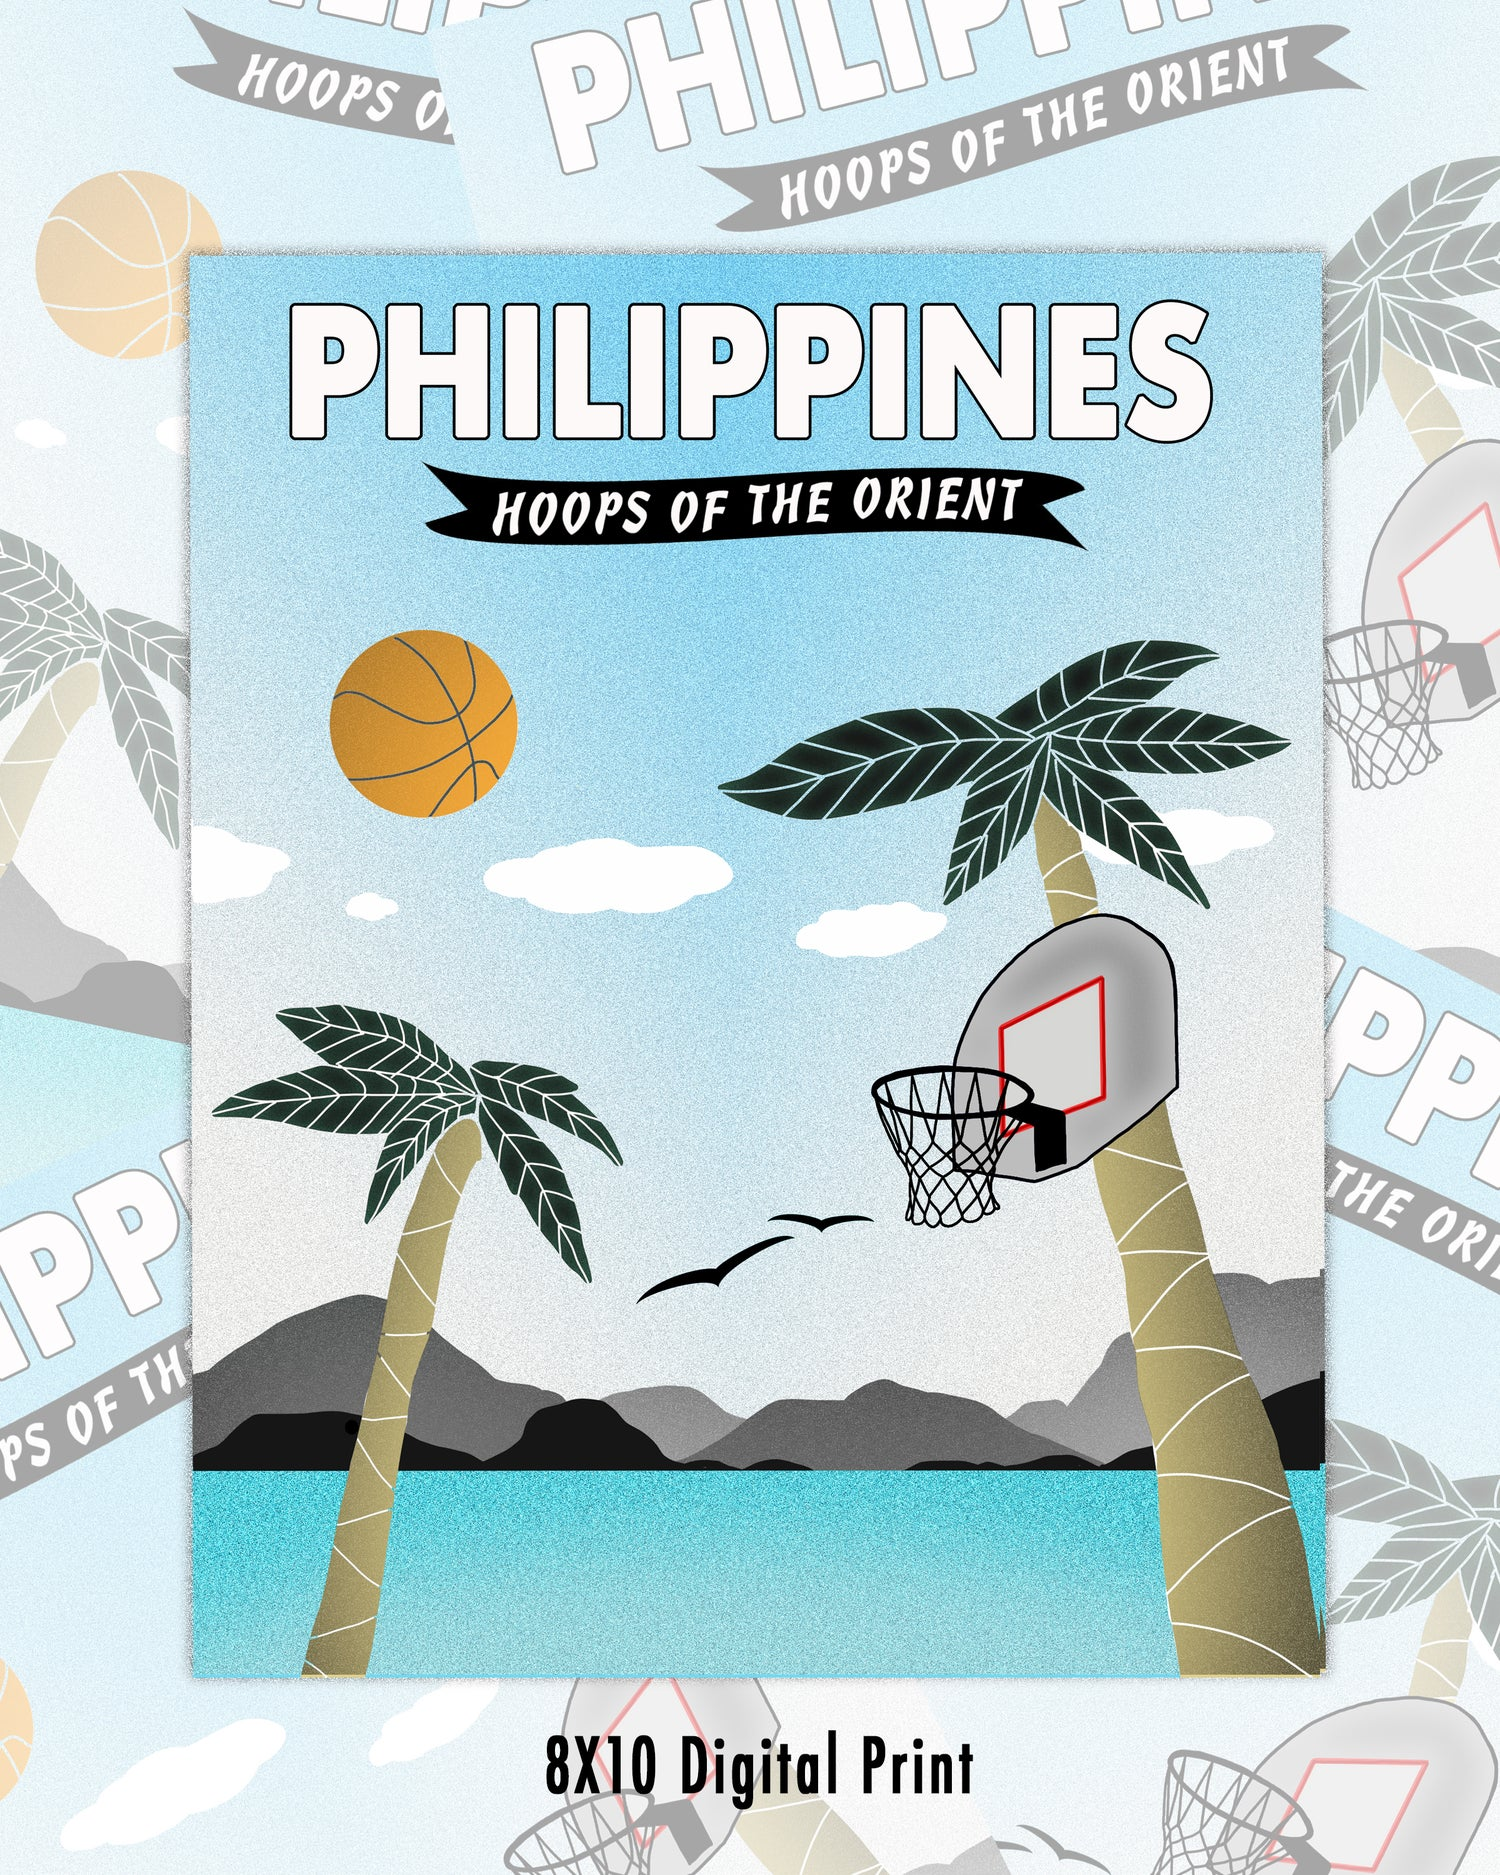 Philippines: Hoops of The Orient